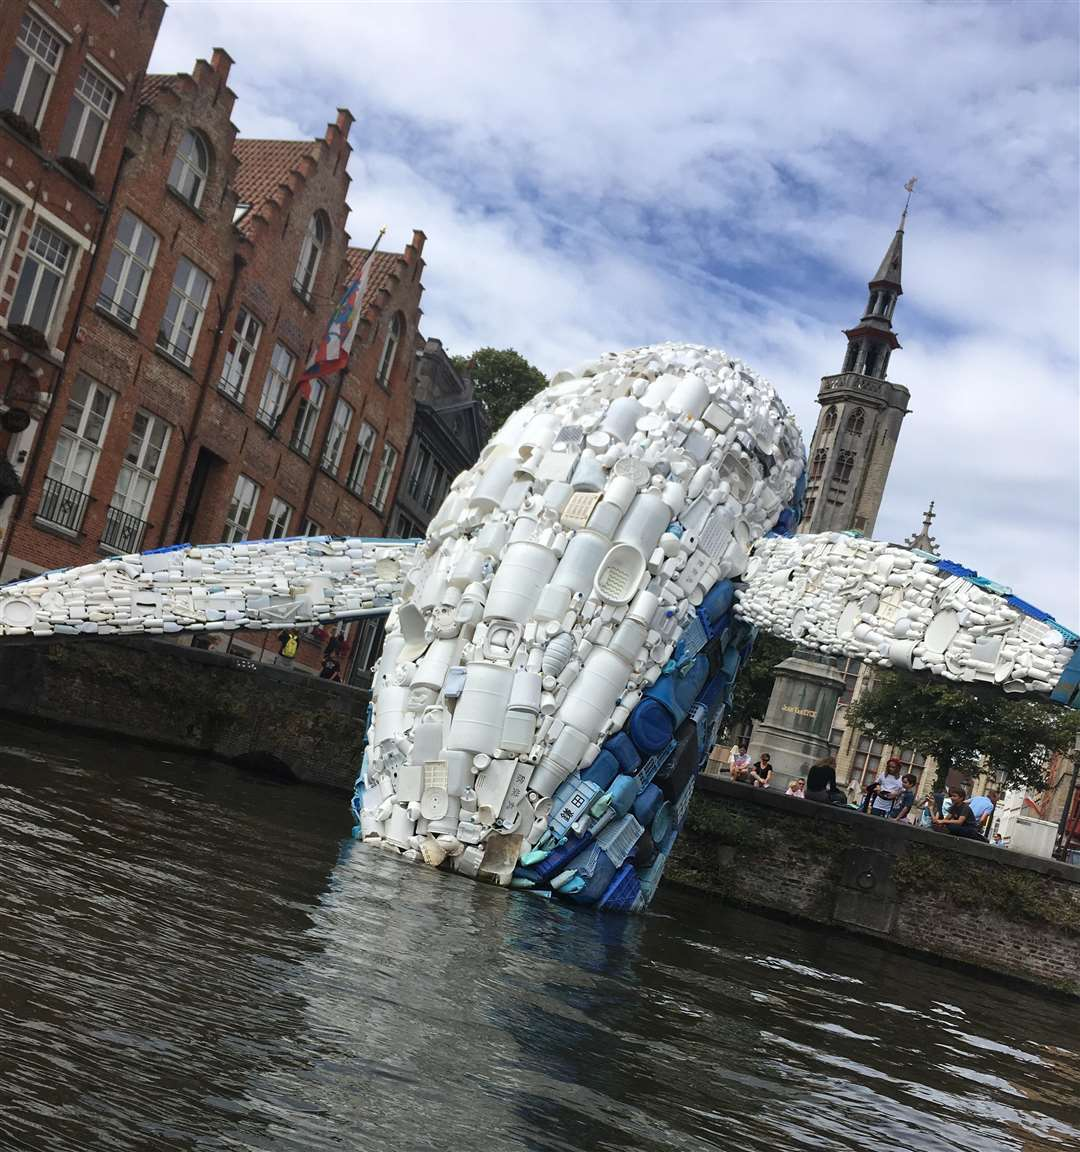 The plastic whale was part of the Triennial installations dotted around Bruges